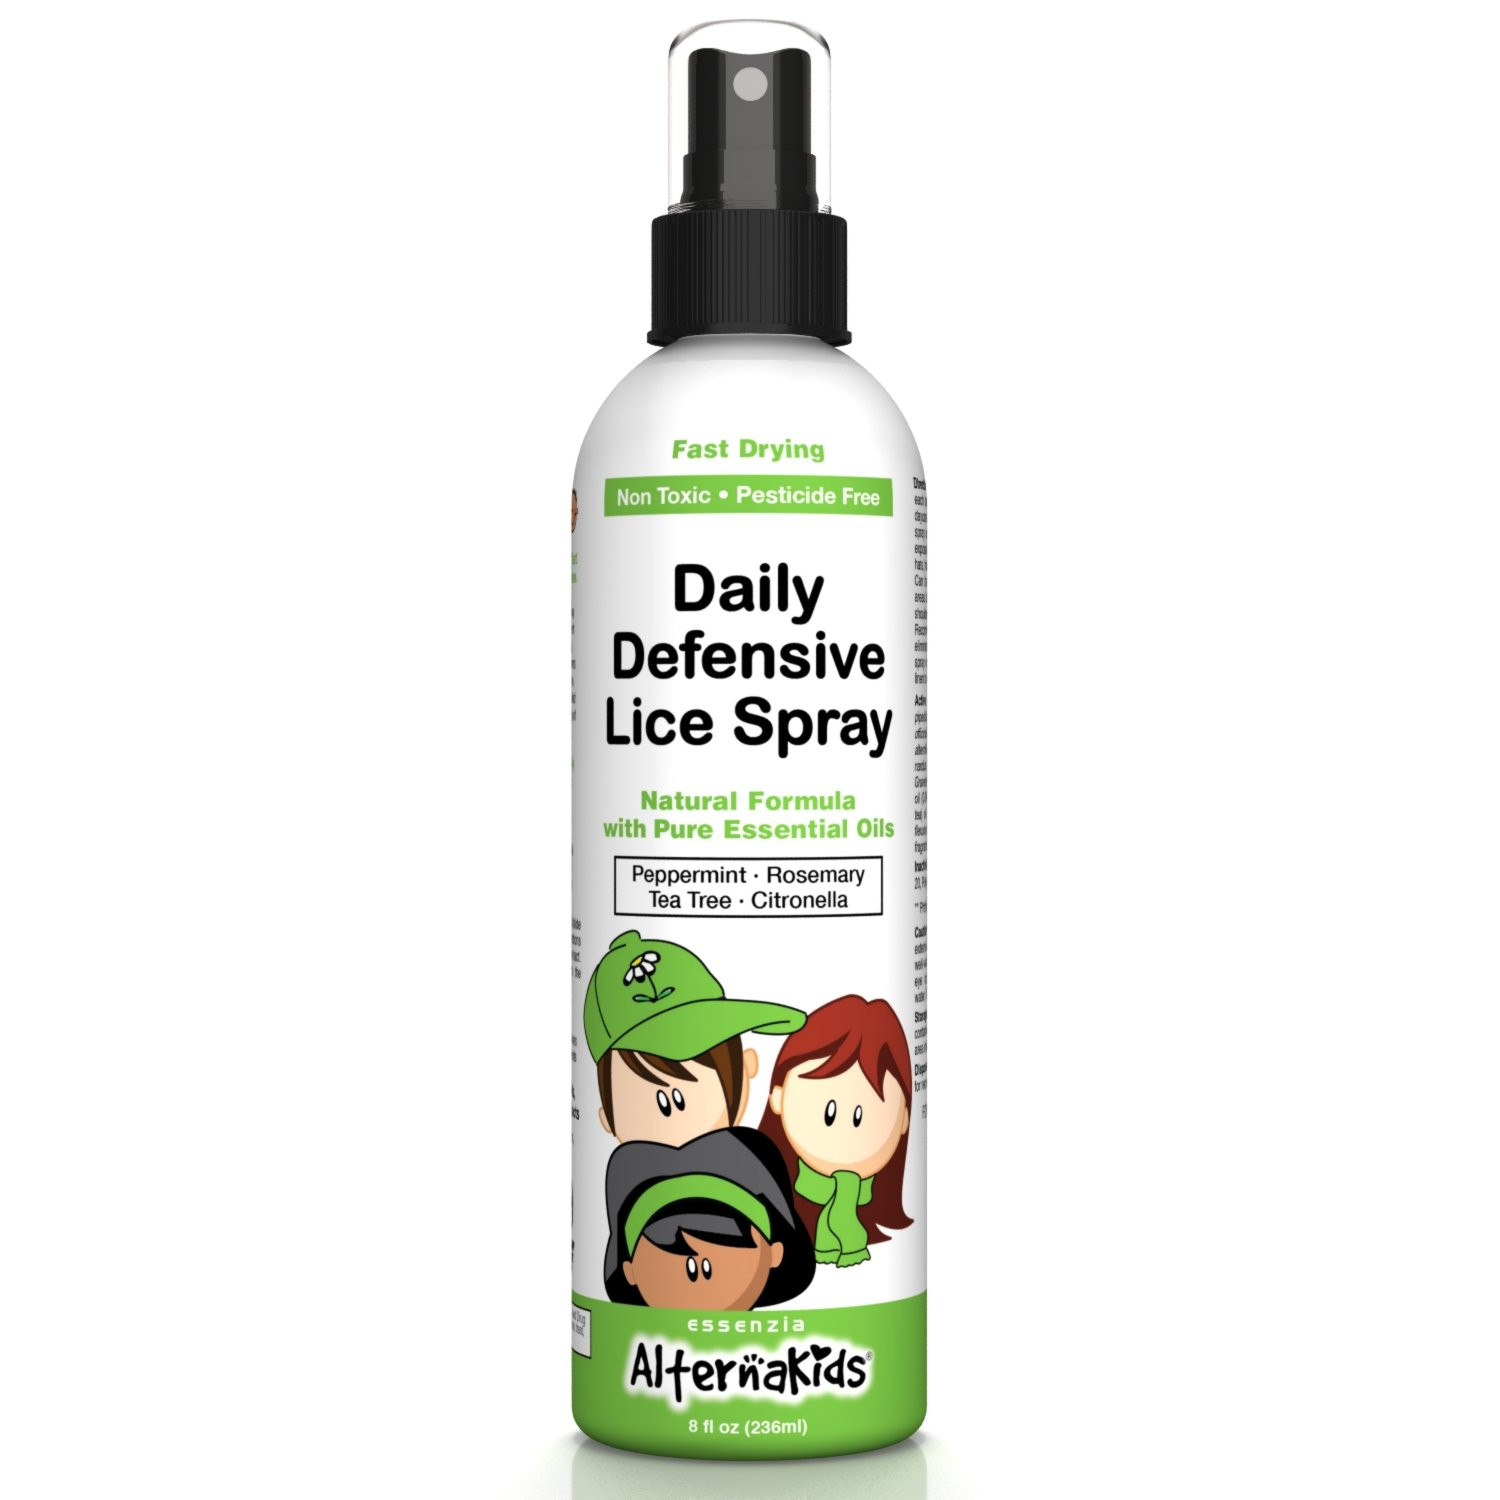 Lice Prevention Spray for Furniture and Bedding by AlternaKids – Safe, Natural, Non-Toxic | Eliminate Outbreaks at Home by Misting Hats, Backpacks, Pillows and Toys (8 oz Bottle)